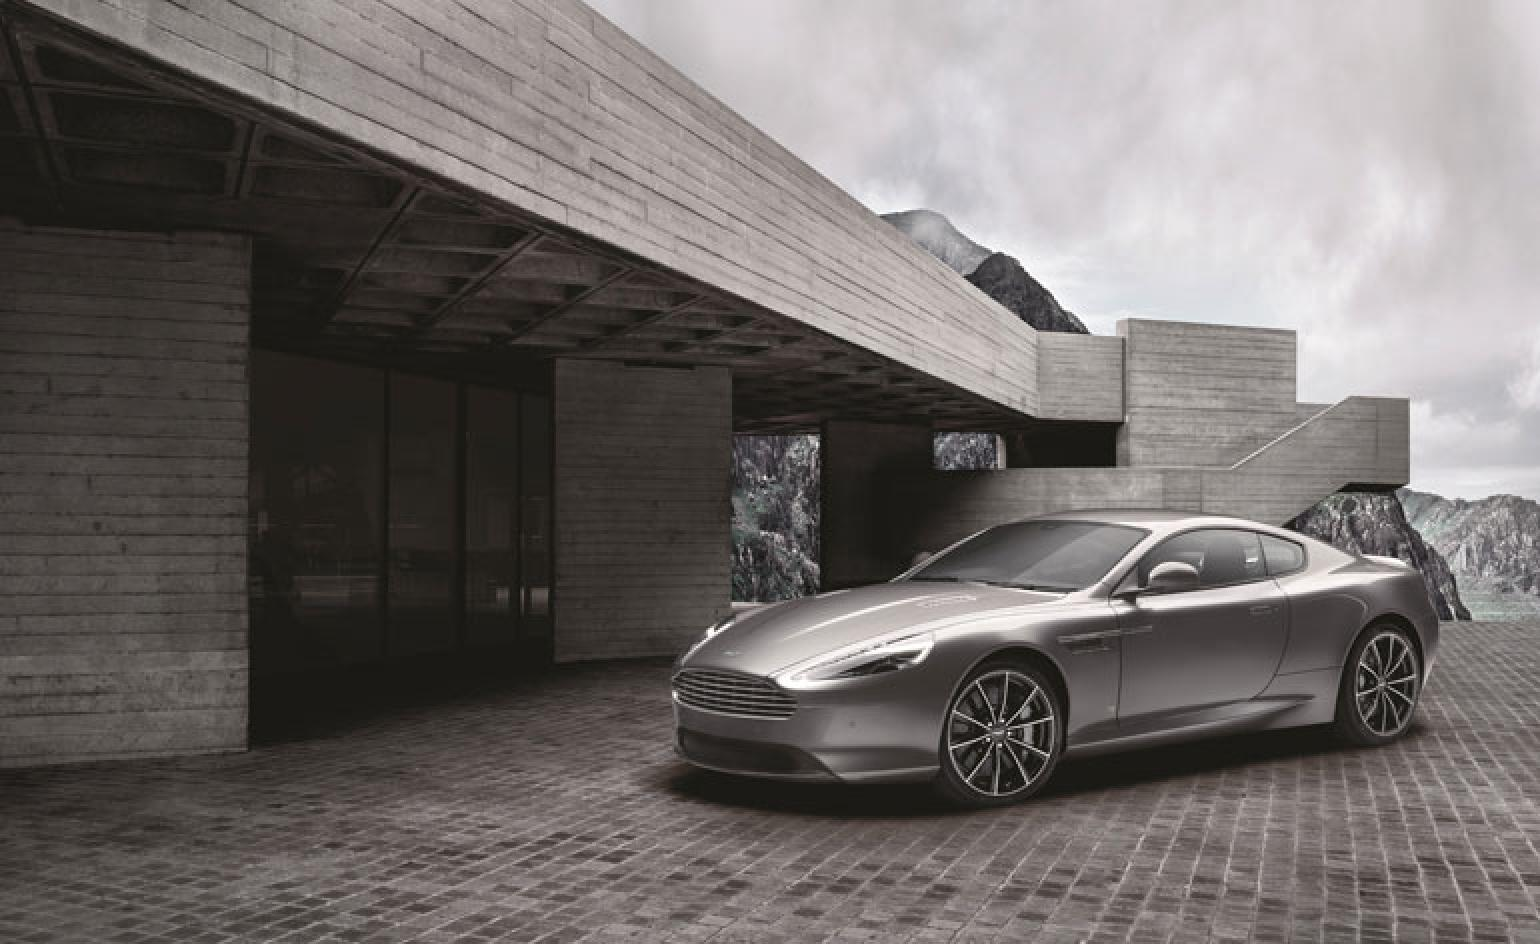 The World Is Not Enough Aston Martin Reveals Db9 Gt Bond Edition Wallpaper